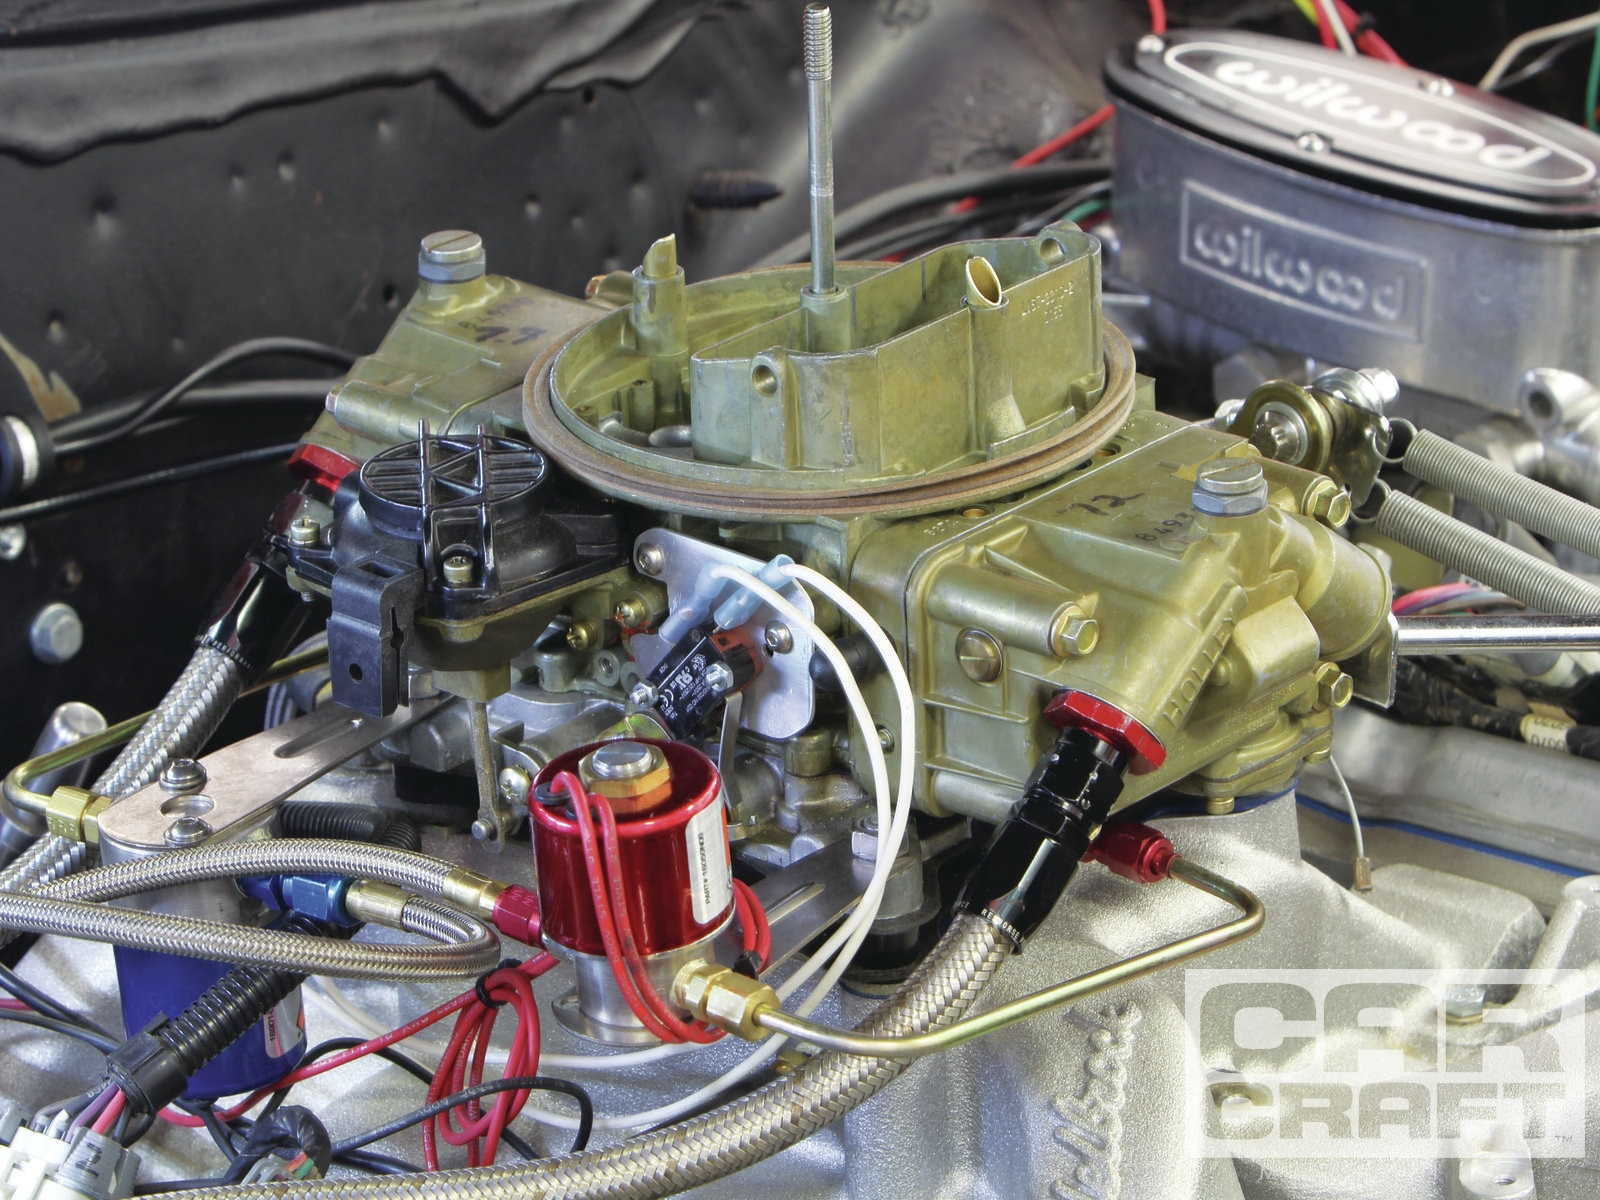 nitrous wiring diagram with purge electric motor pictures images photos photobucket